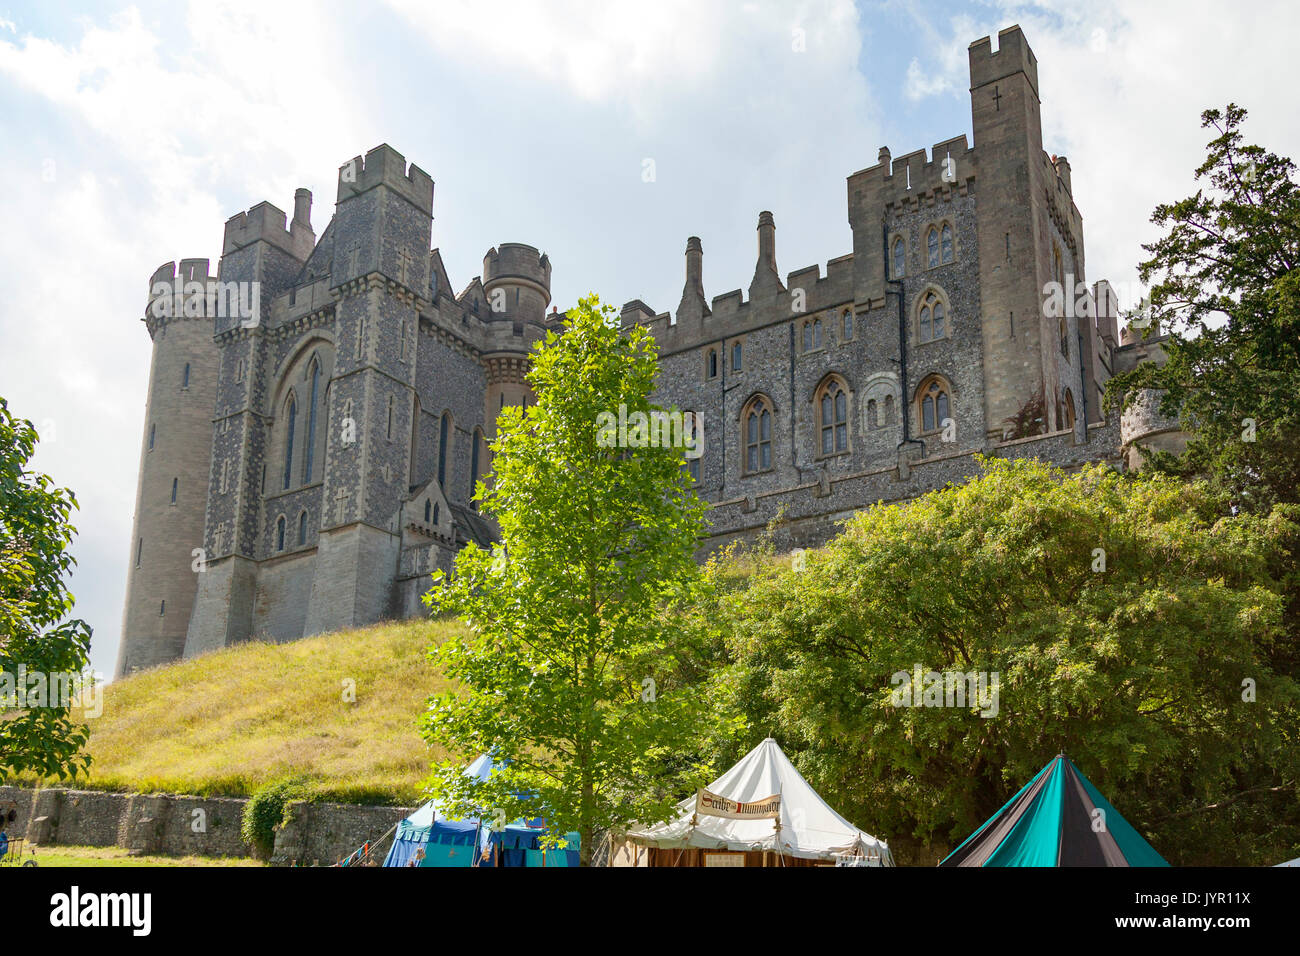 Arundel Castle, Sussex, England. The home of the Duke of Norfolk - Stock Image